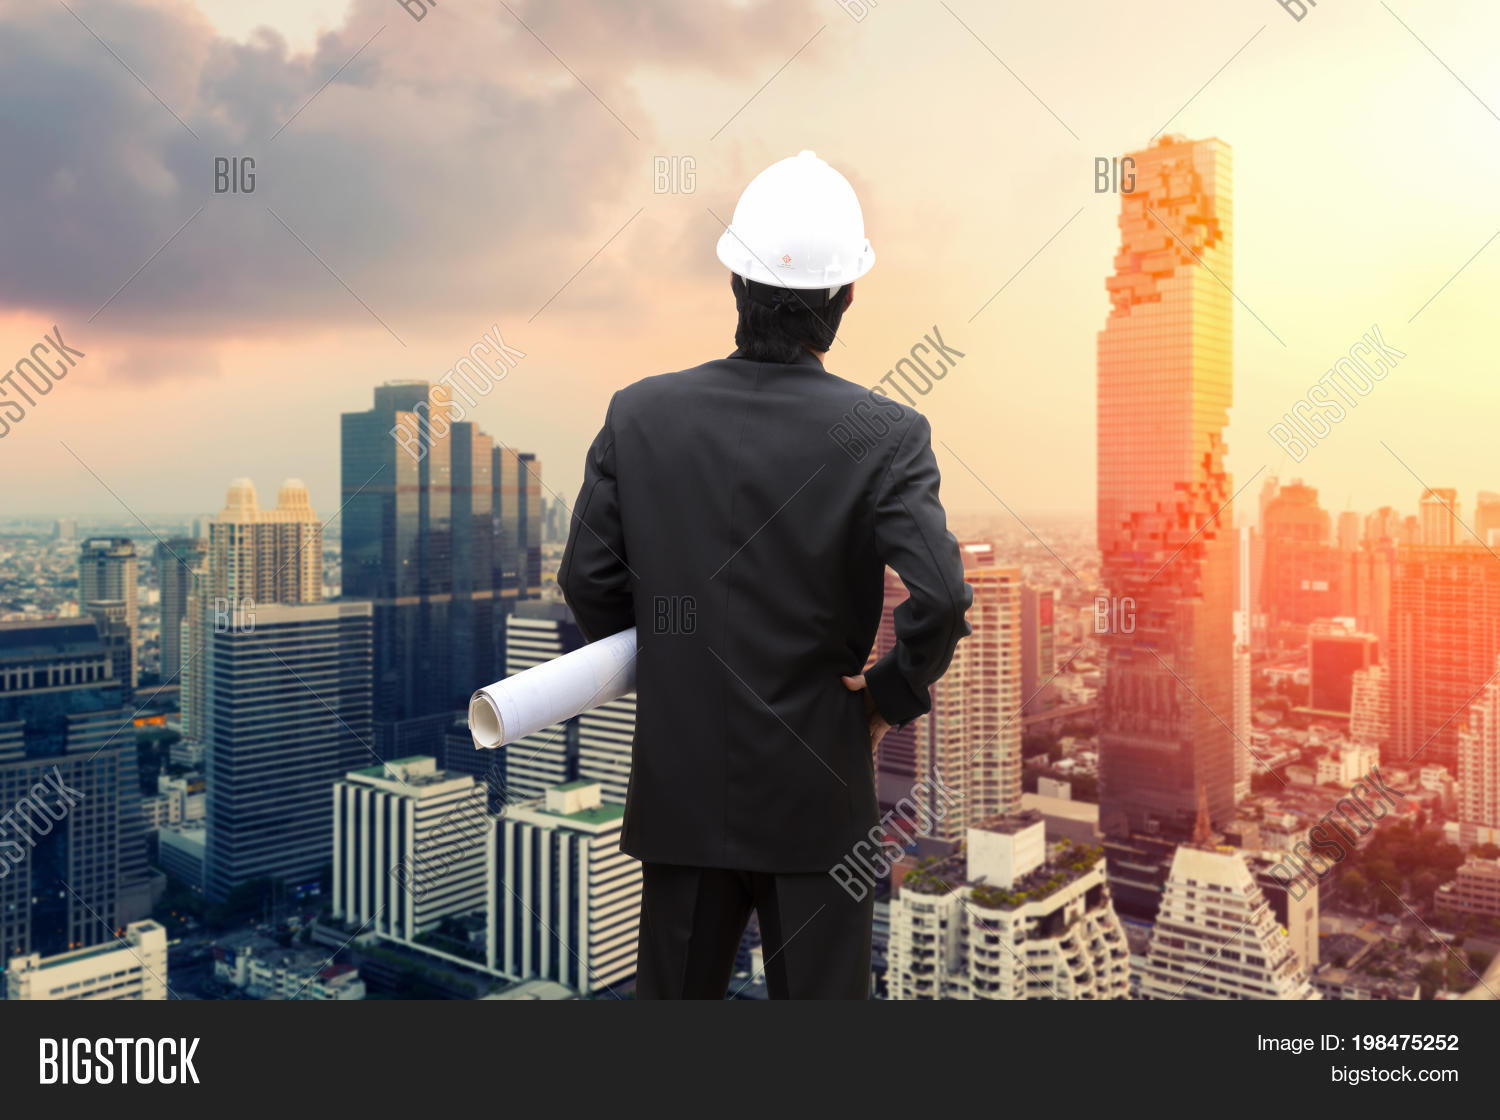 Management consulting engineers image photo bigstock management consulting with engineers working and holding blueprint engineer designer with helmet holding blueprint in his malvernweather Choice Image